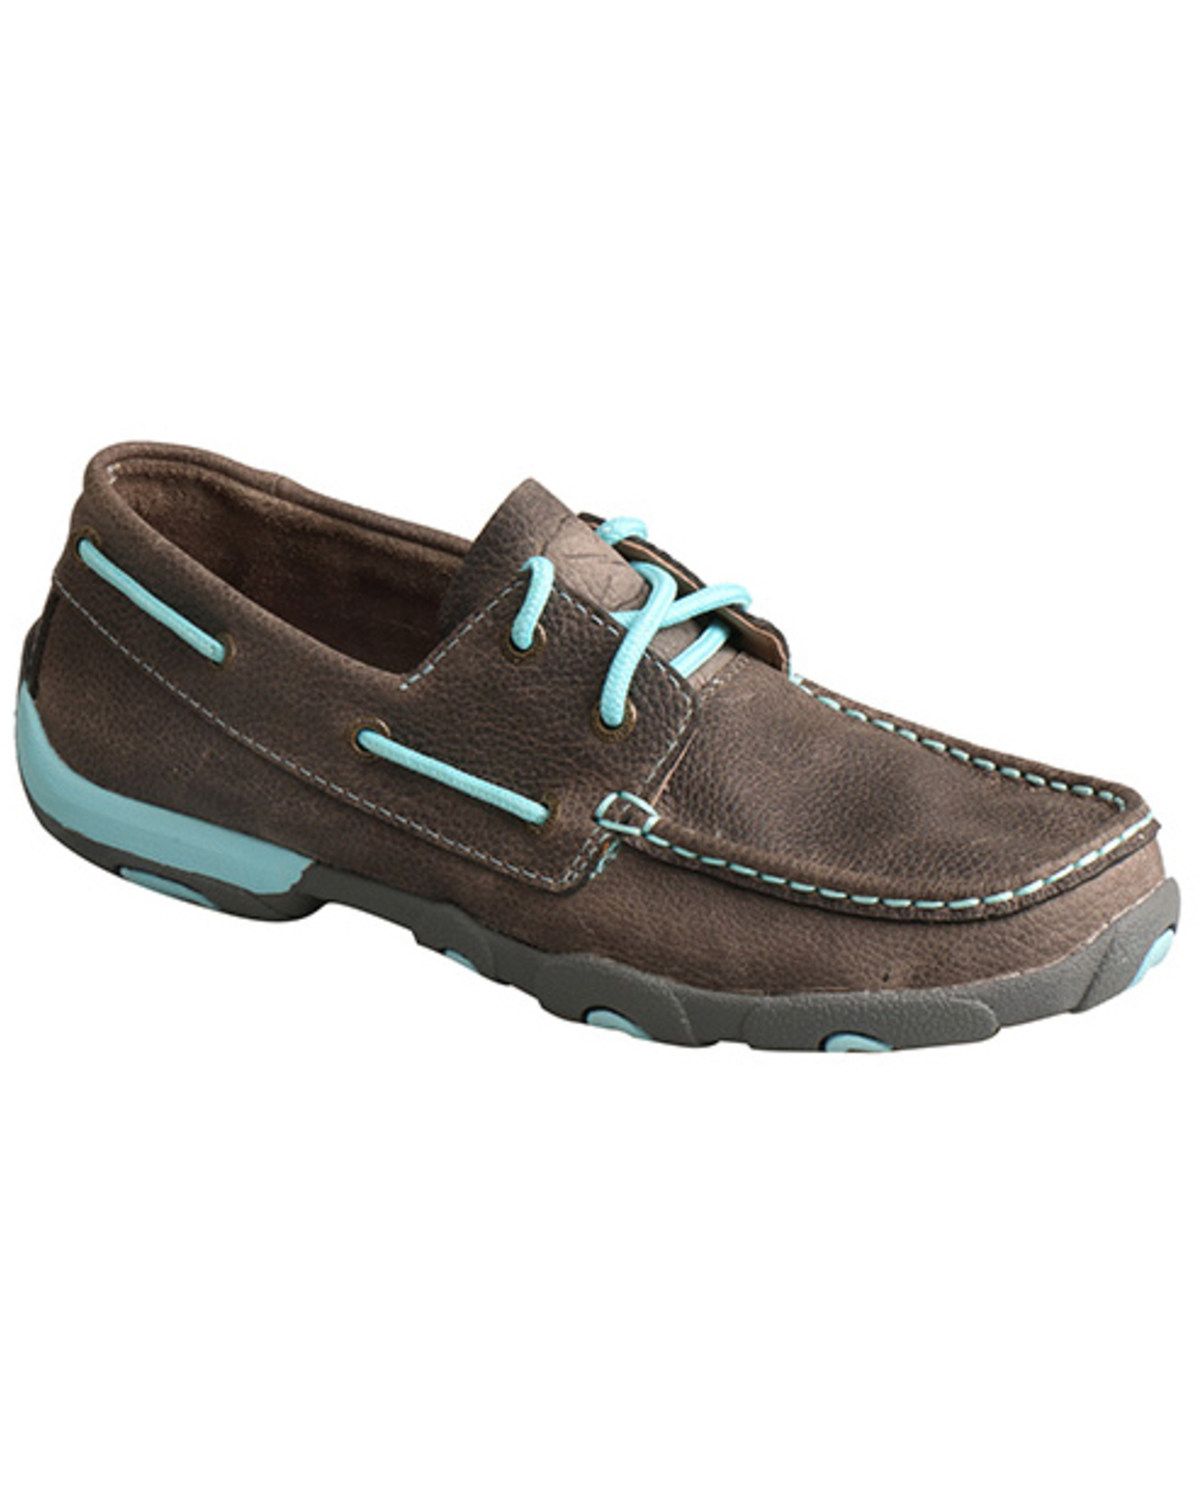 9f0d6d71402a Twisted X Women s Driving Moccasin Shoes - Moc Toe